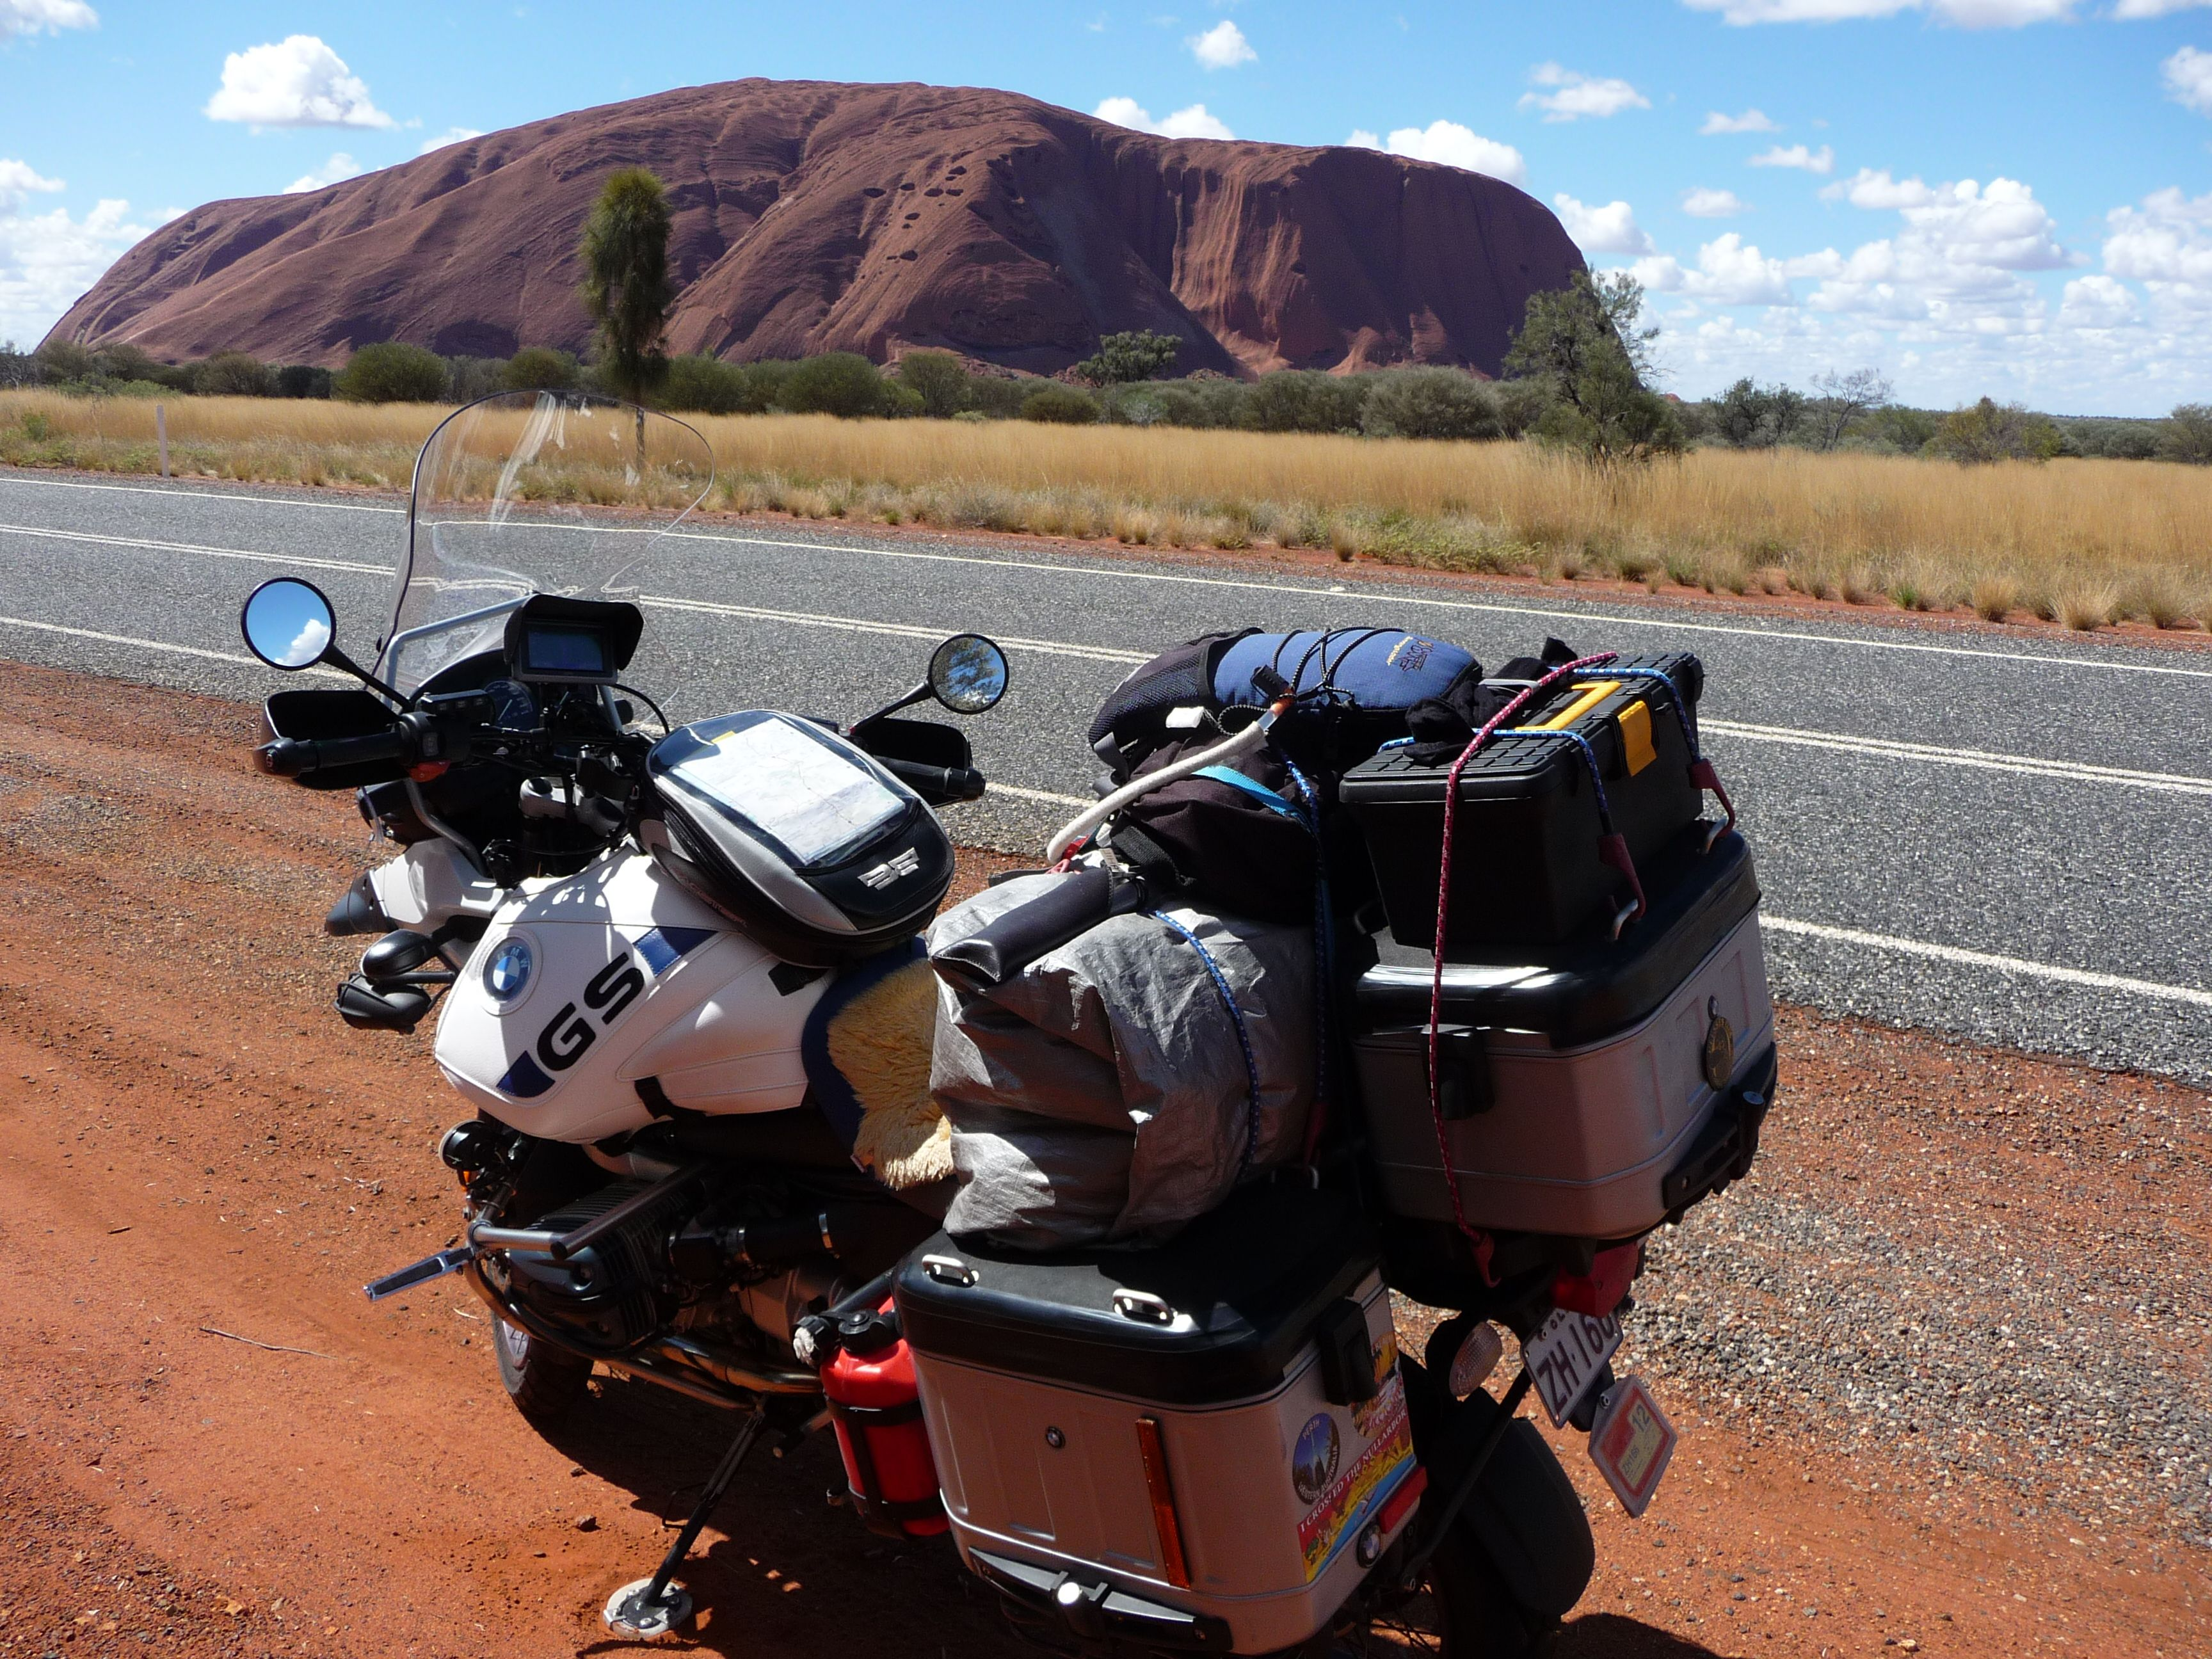 bmw r1150 gsa - around australia in 40 days - ayers rock, nt. the